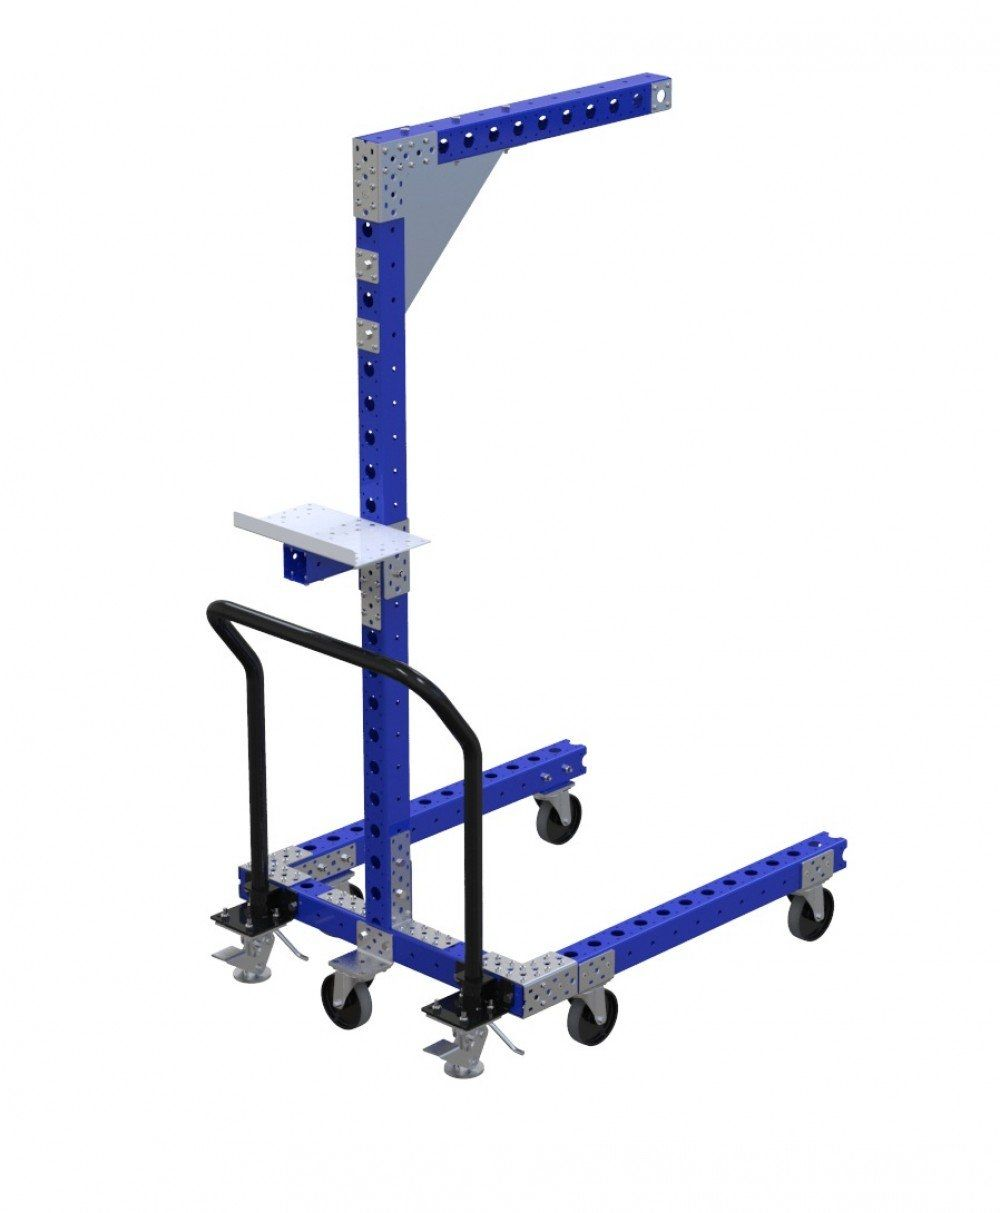 Industrial tool balancer cart by FlexQube